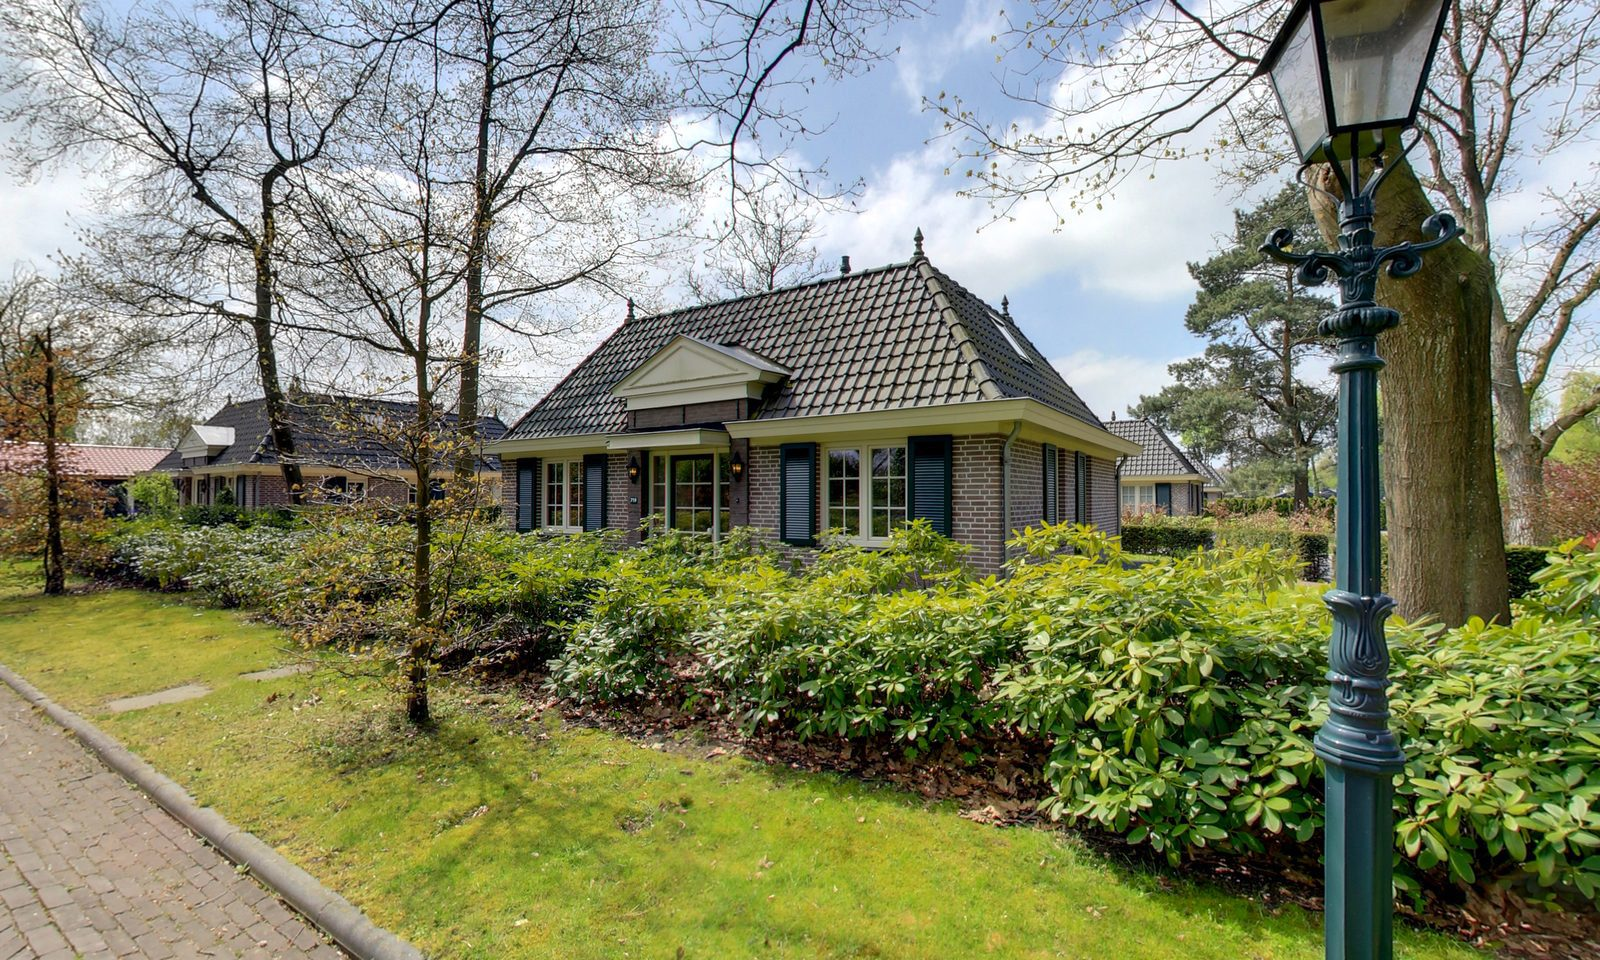 Holiday park on the Veluwe